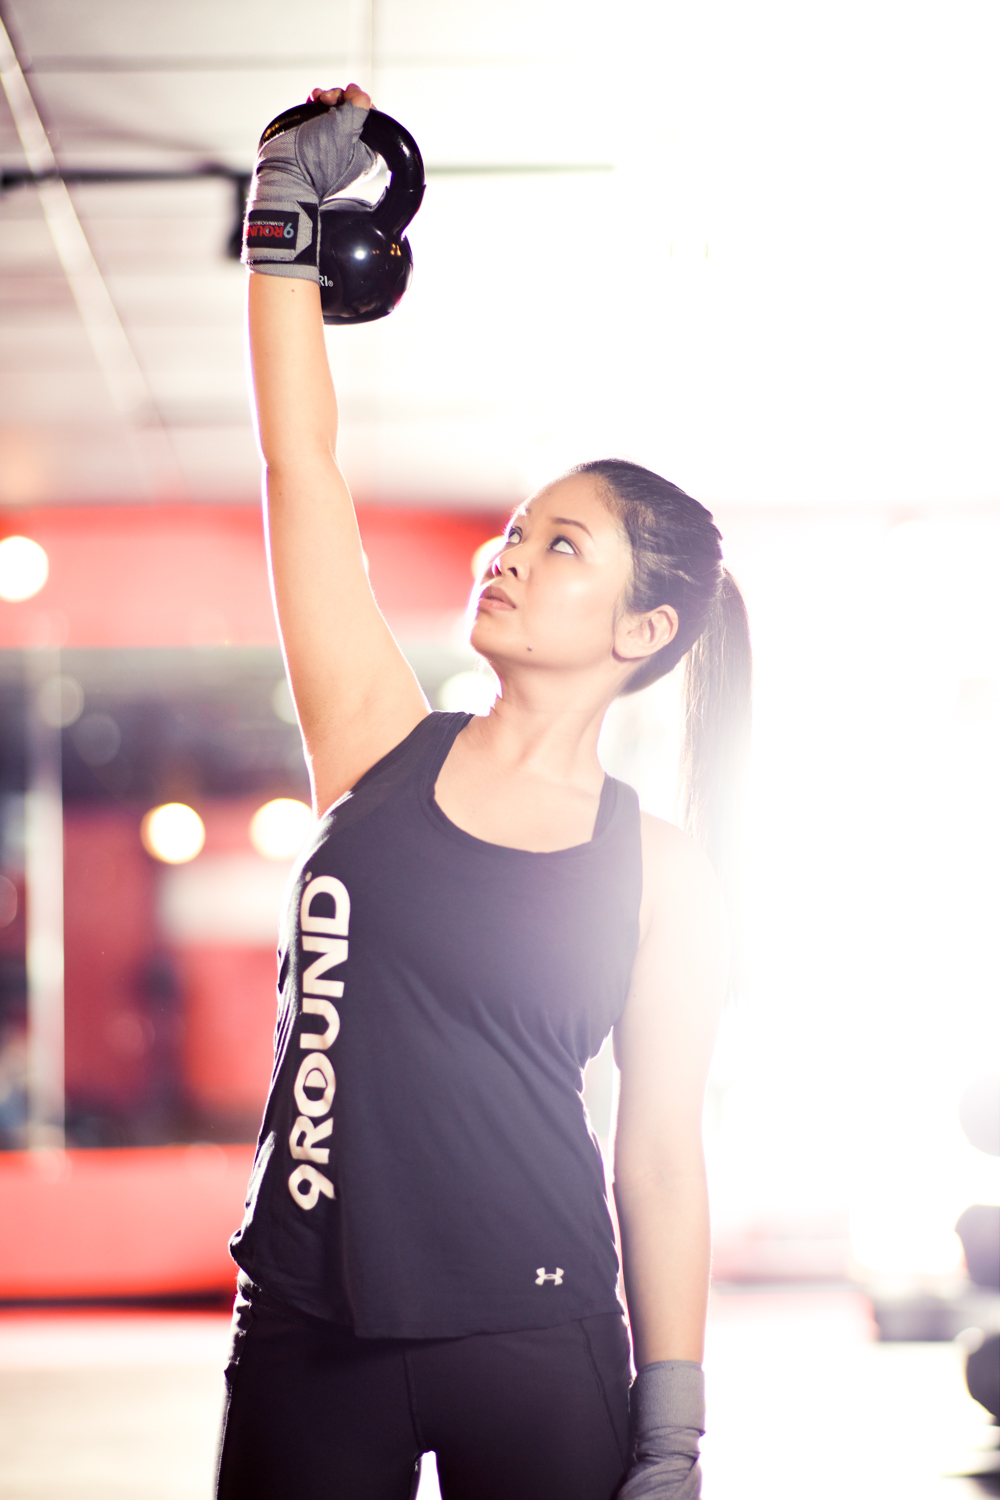 9Round Fitness Social Media Ad Campaign